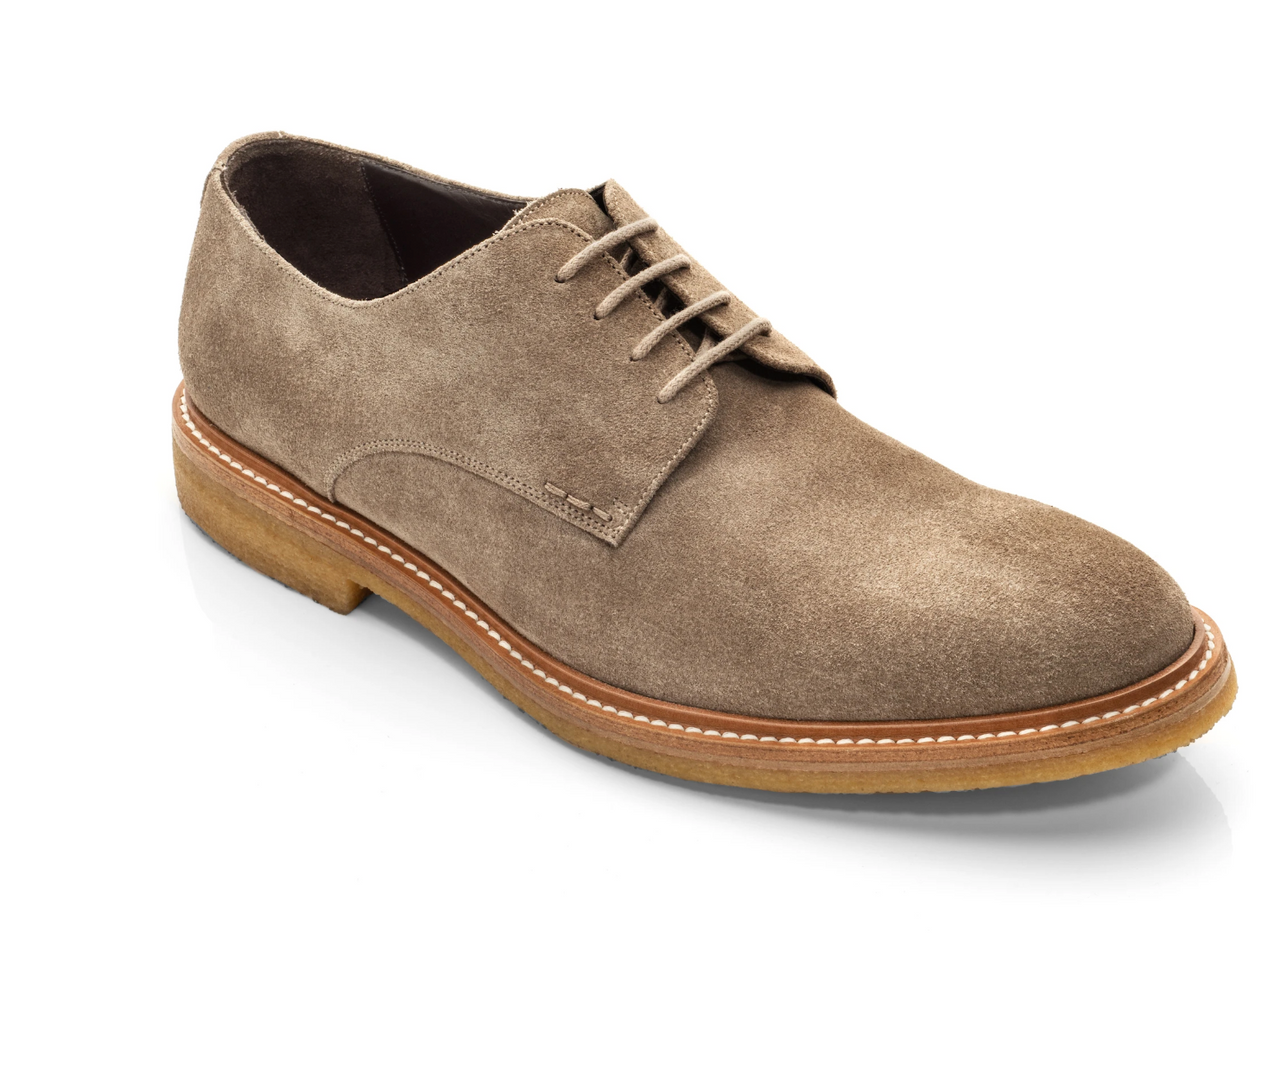 To Boot Park Suede Buck With Gum Rubber Sole, Taupe